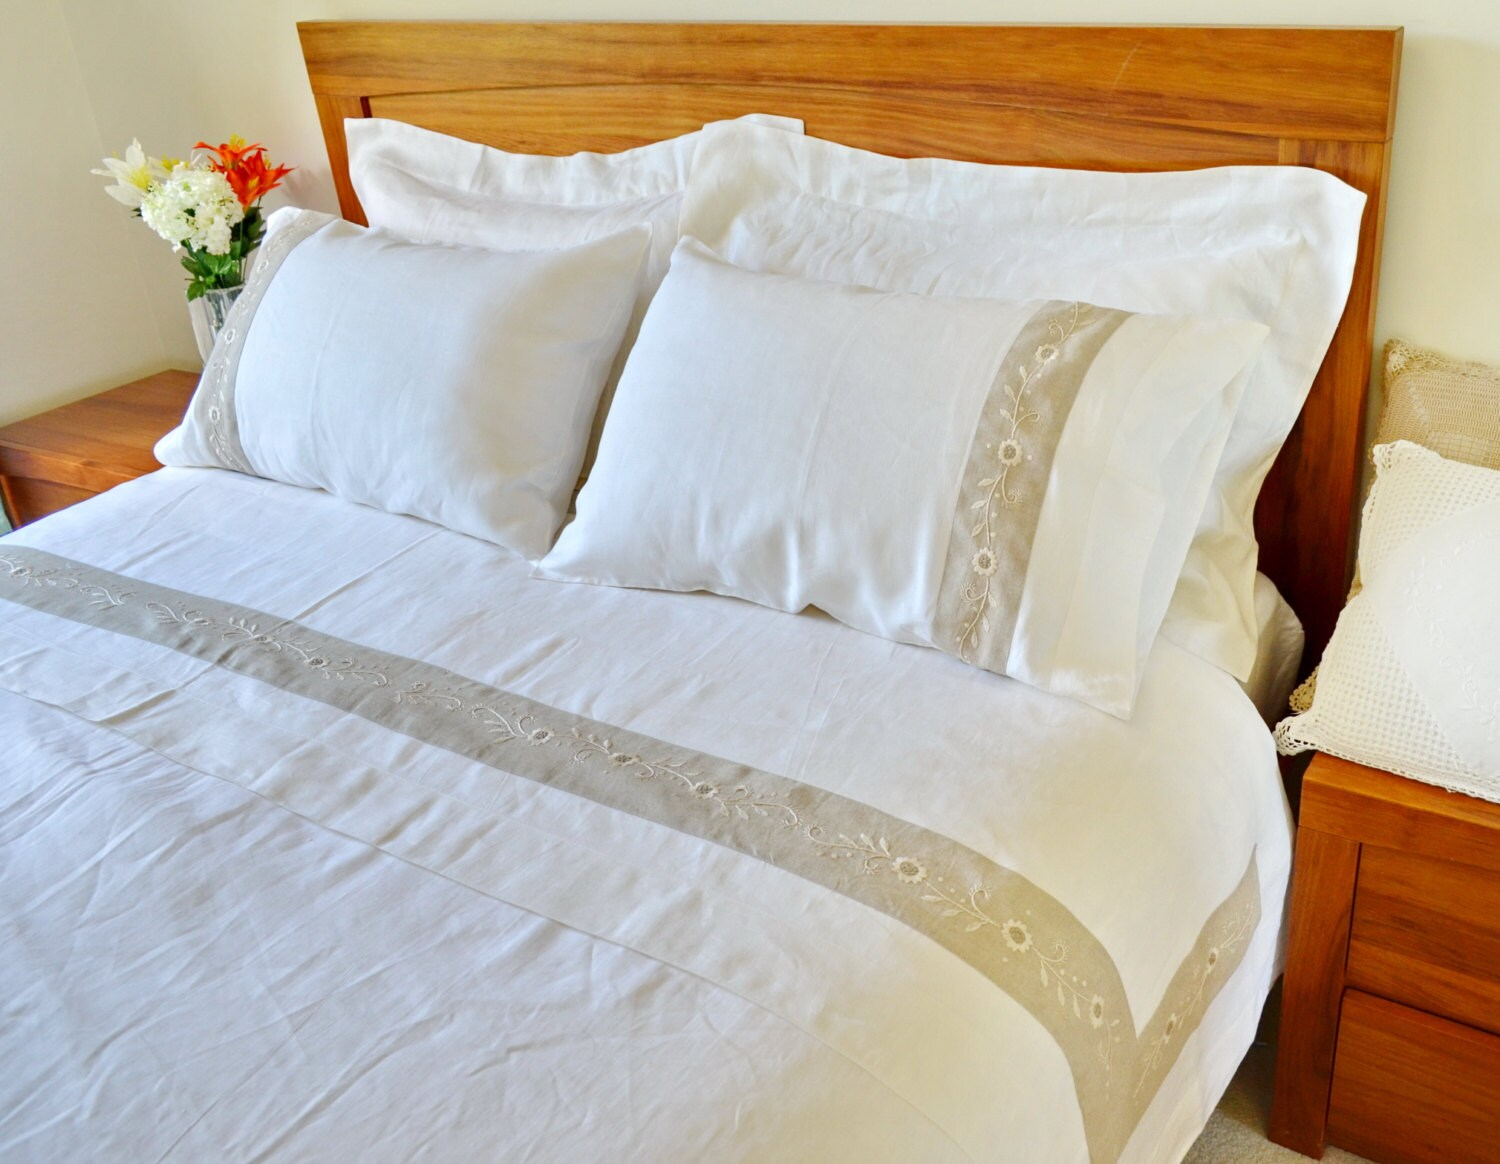 queen king size bed sheet set flat sheet and pillowcases. Black Bedroom Furniture Sets. Home Design Ideas